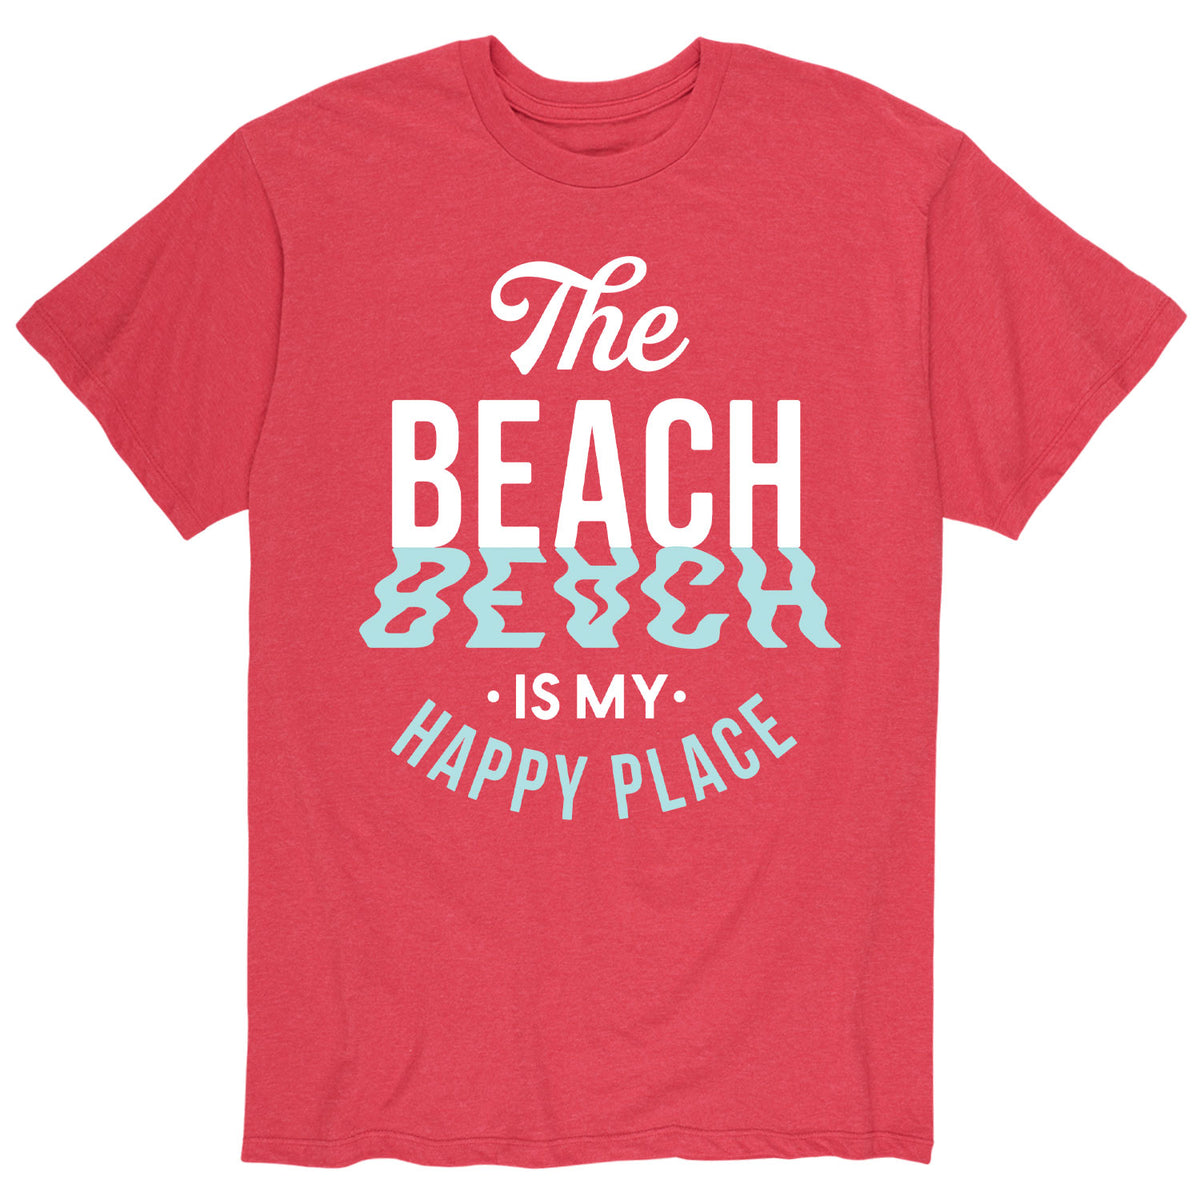 Beach Happy Place - Men's Short Sleeve T-Shirt